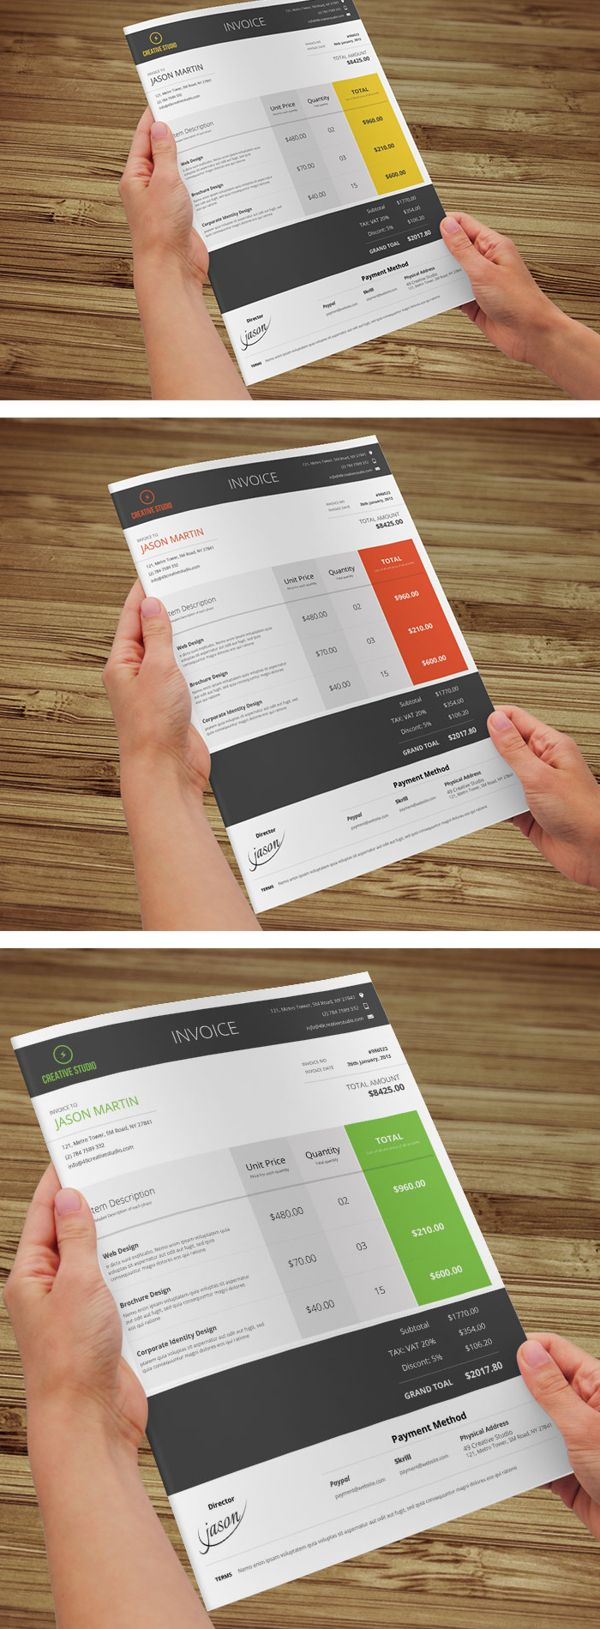 Canada Car Invoice Price Excel  Best Desain Faktur Invoice Pilihan Images On Pinterest  Contractor Invoice Sample Word with Microsoft Word Invoice Template Download  Desain Faktur Invoice Pilihan  Yellow Cab Receipt Excel